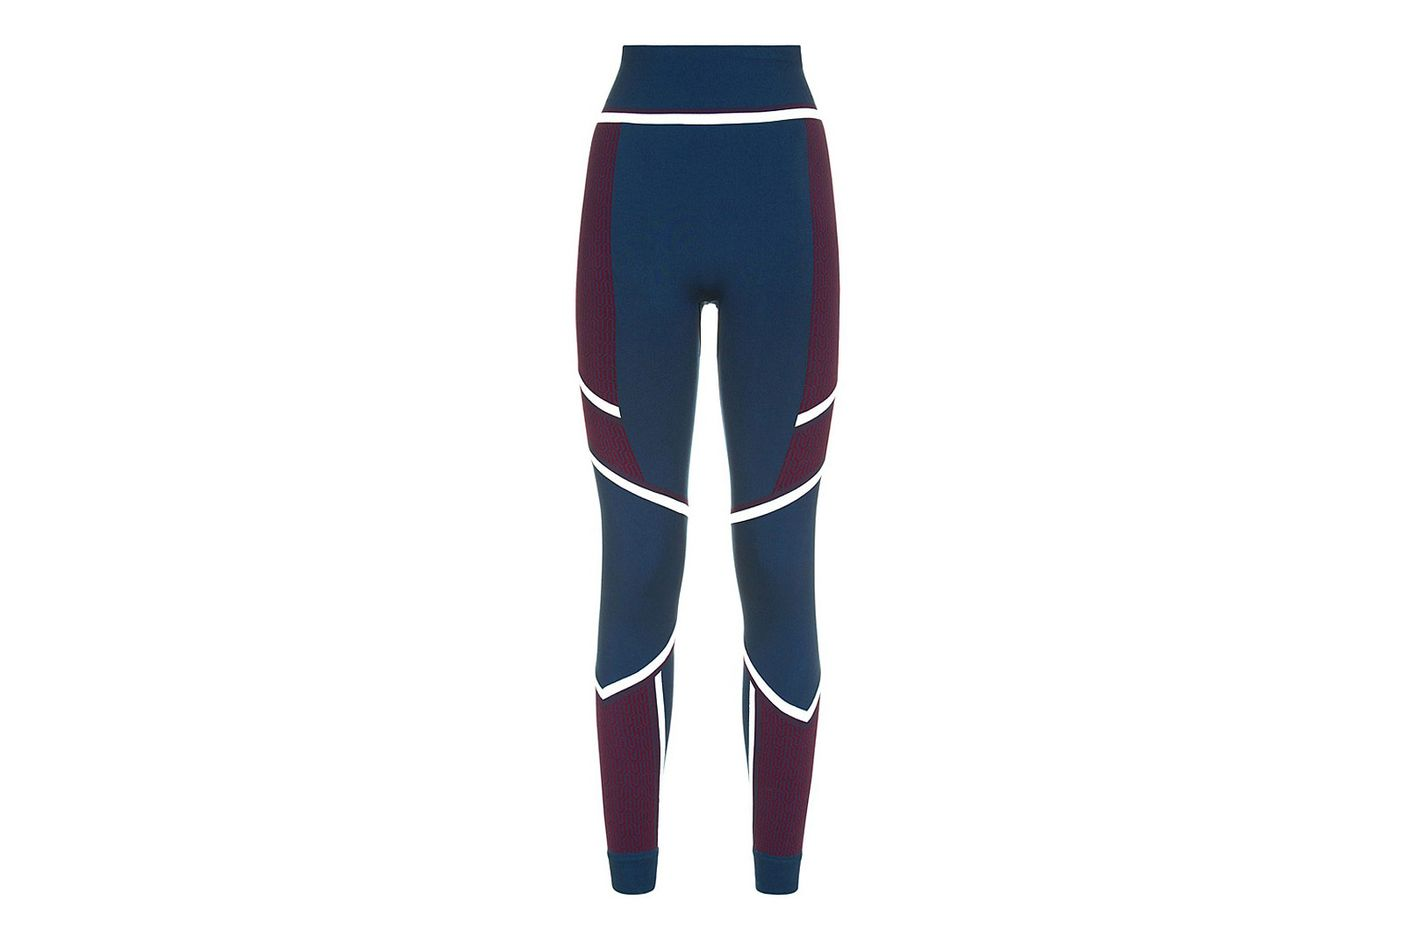 Drift Ski Base Layer Leggings